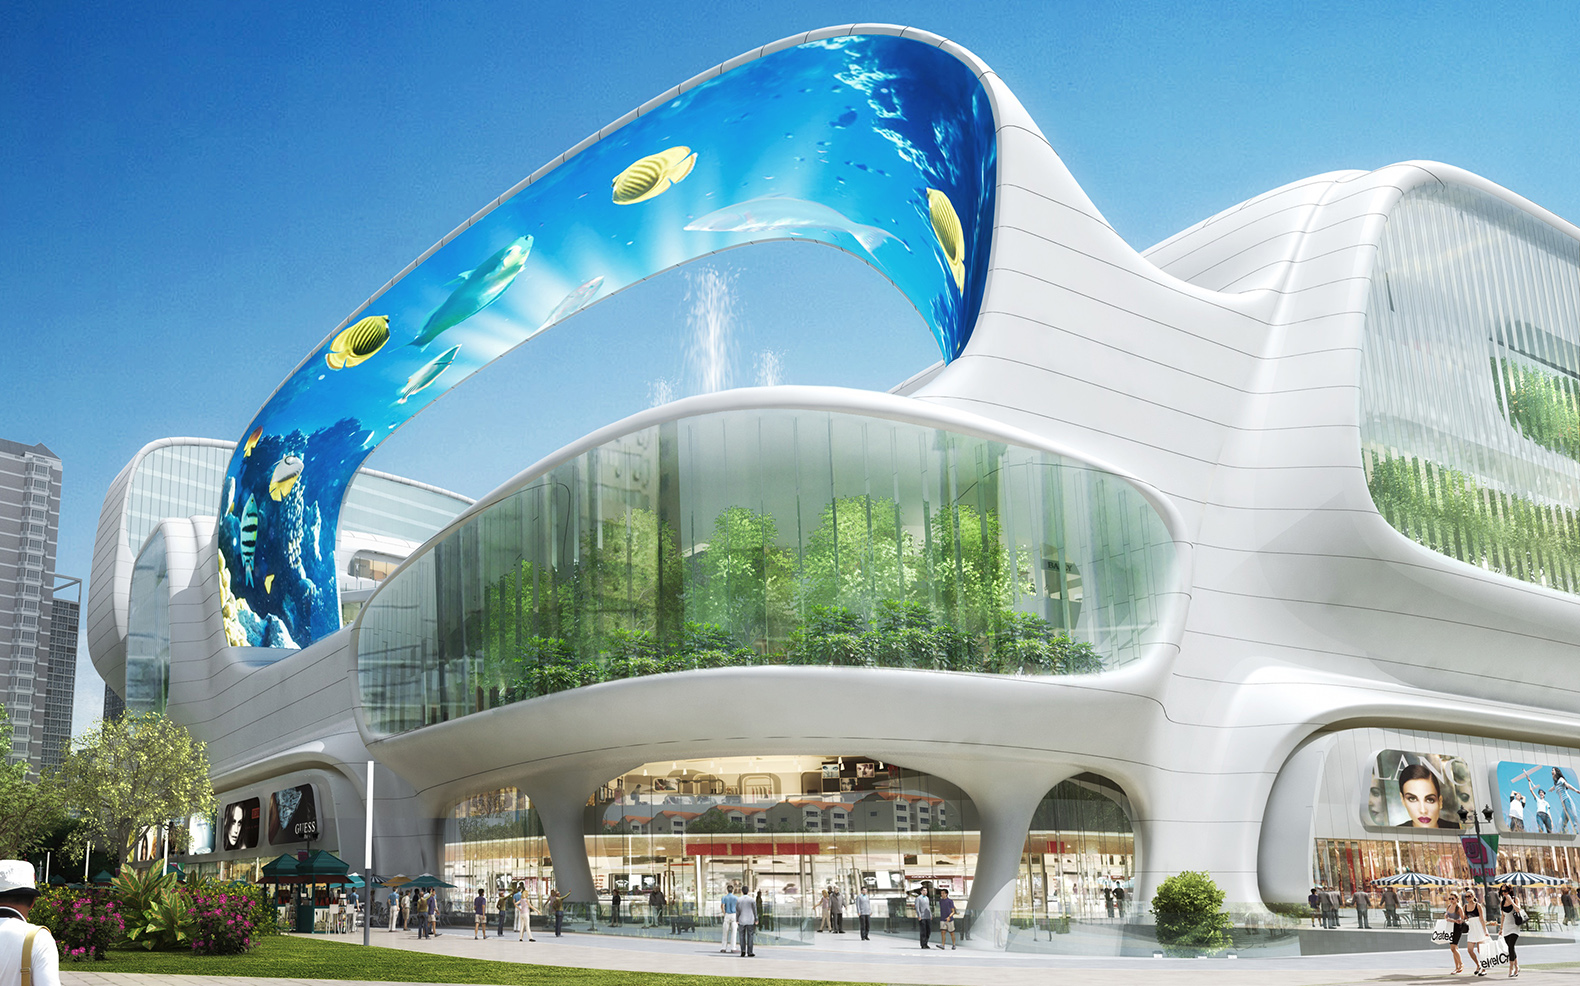 This crazy Chinese shopping mall has a massive vertical aquarium, an LED canopy and gondola rides